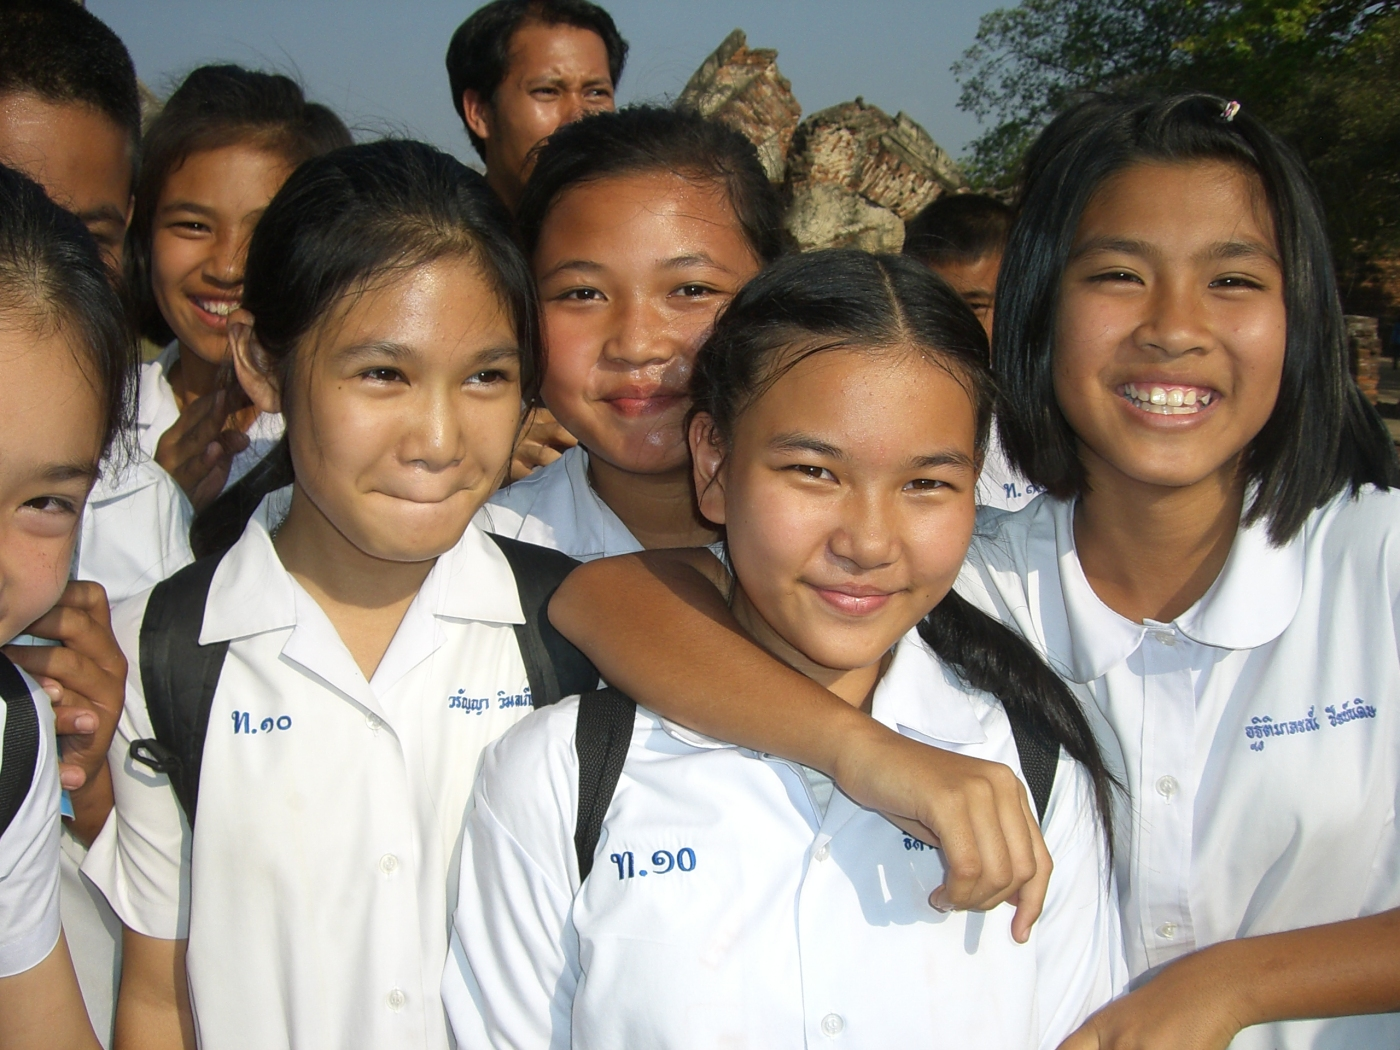 thailand education essay You will watch the video which is called the war that made america research paper for abortion ukiah california essay on power of culture to create a better future project exhibition.